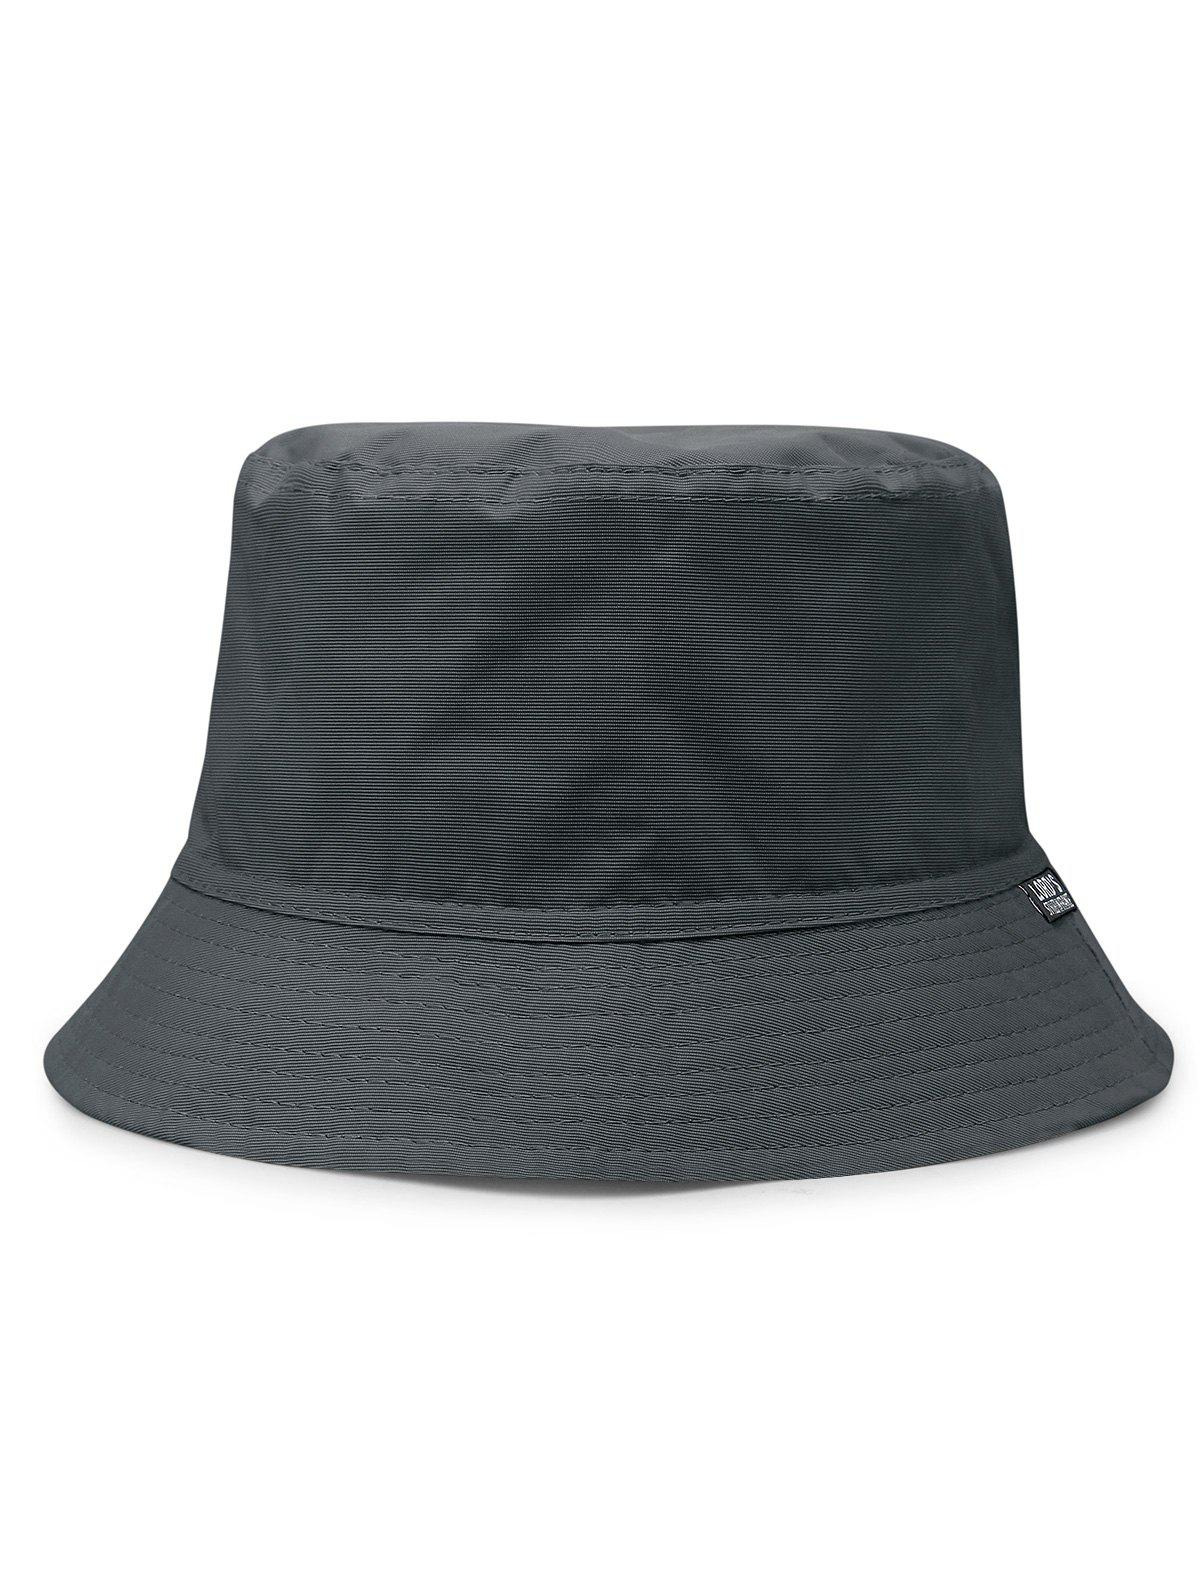 Outdoor Solid Color Flat Top Bucket Hat - GRAY